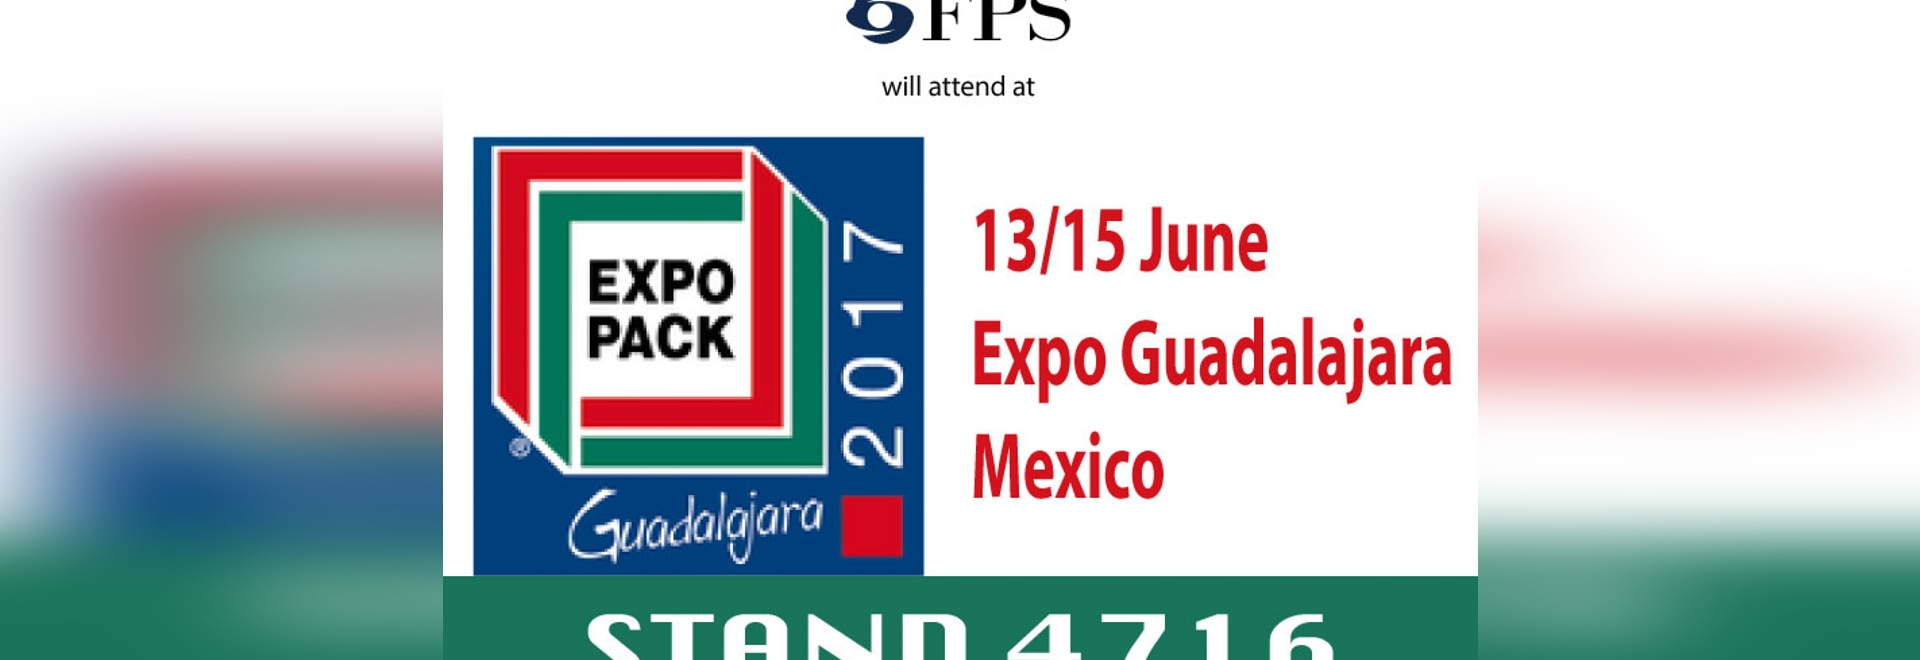 You are invited to visit us at the EXPO PACK 2017